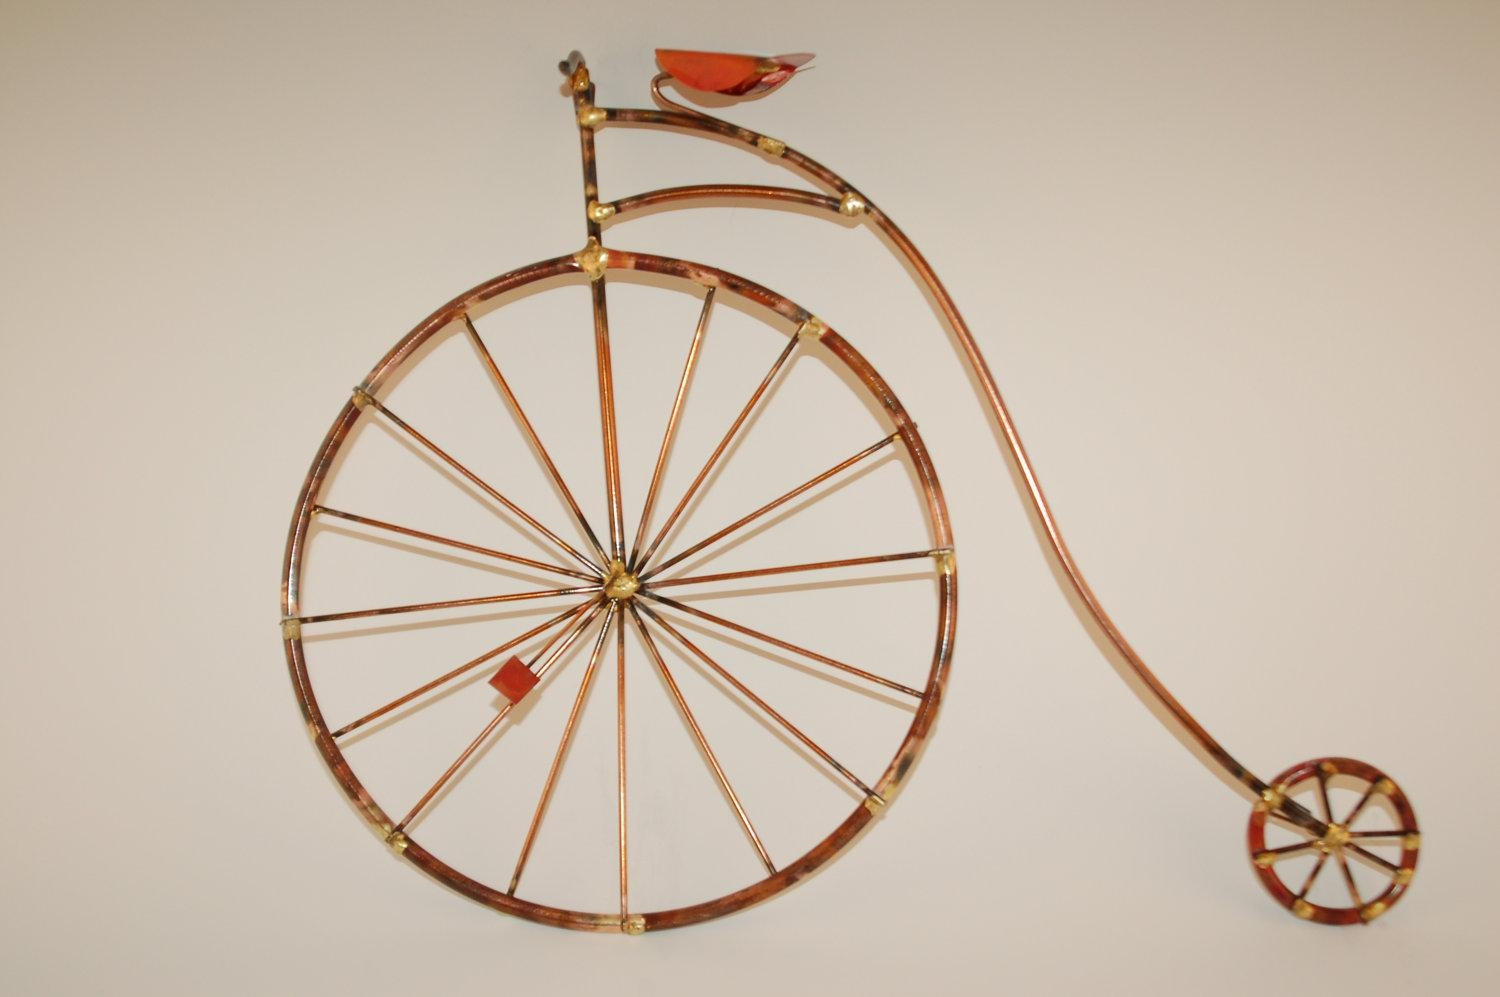 Penny Farthing Bikes Old Fashion Giant Bicyclehigh Pertaining To Metal Bicycle Wall Art (View 7 of 20)